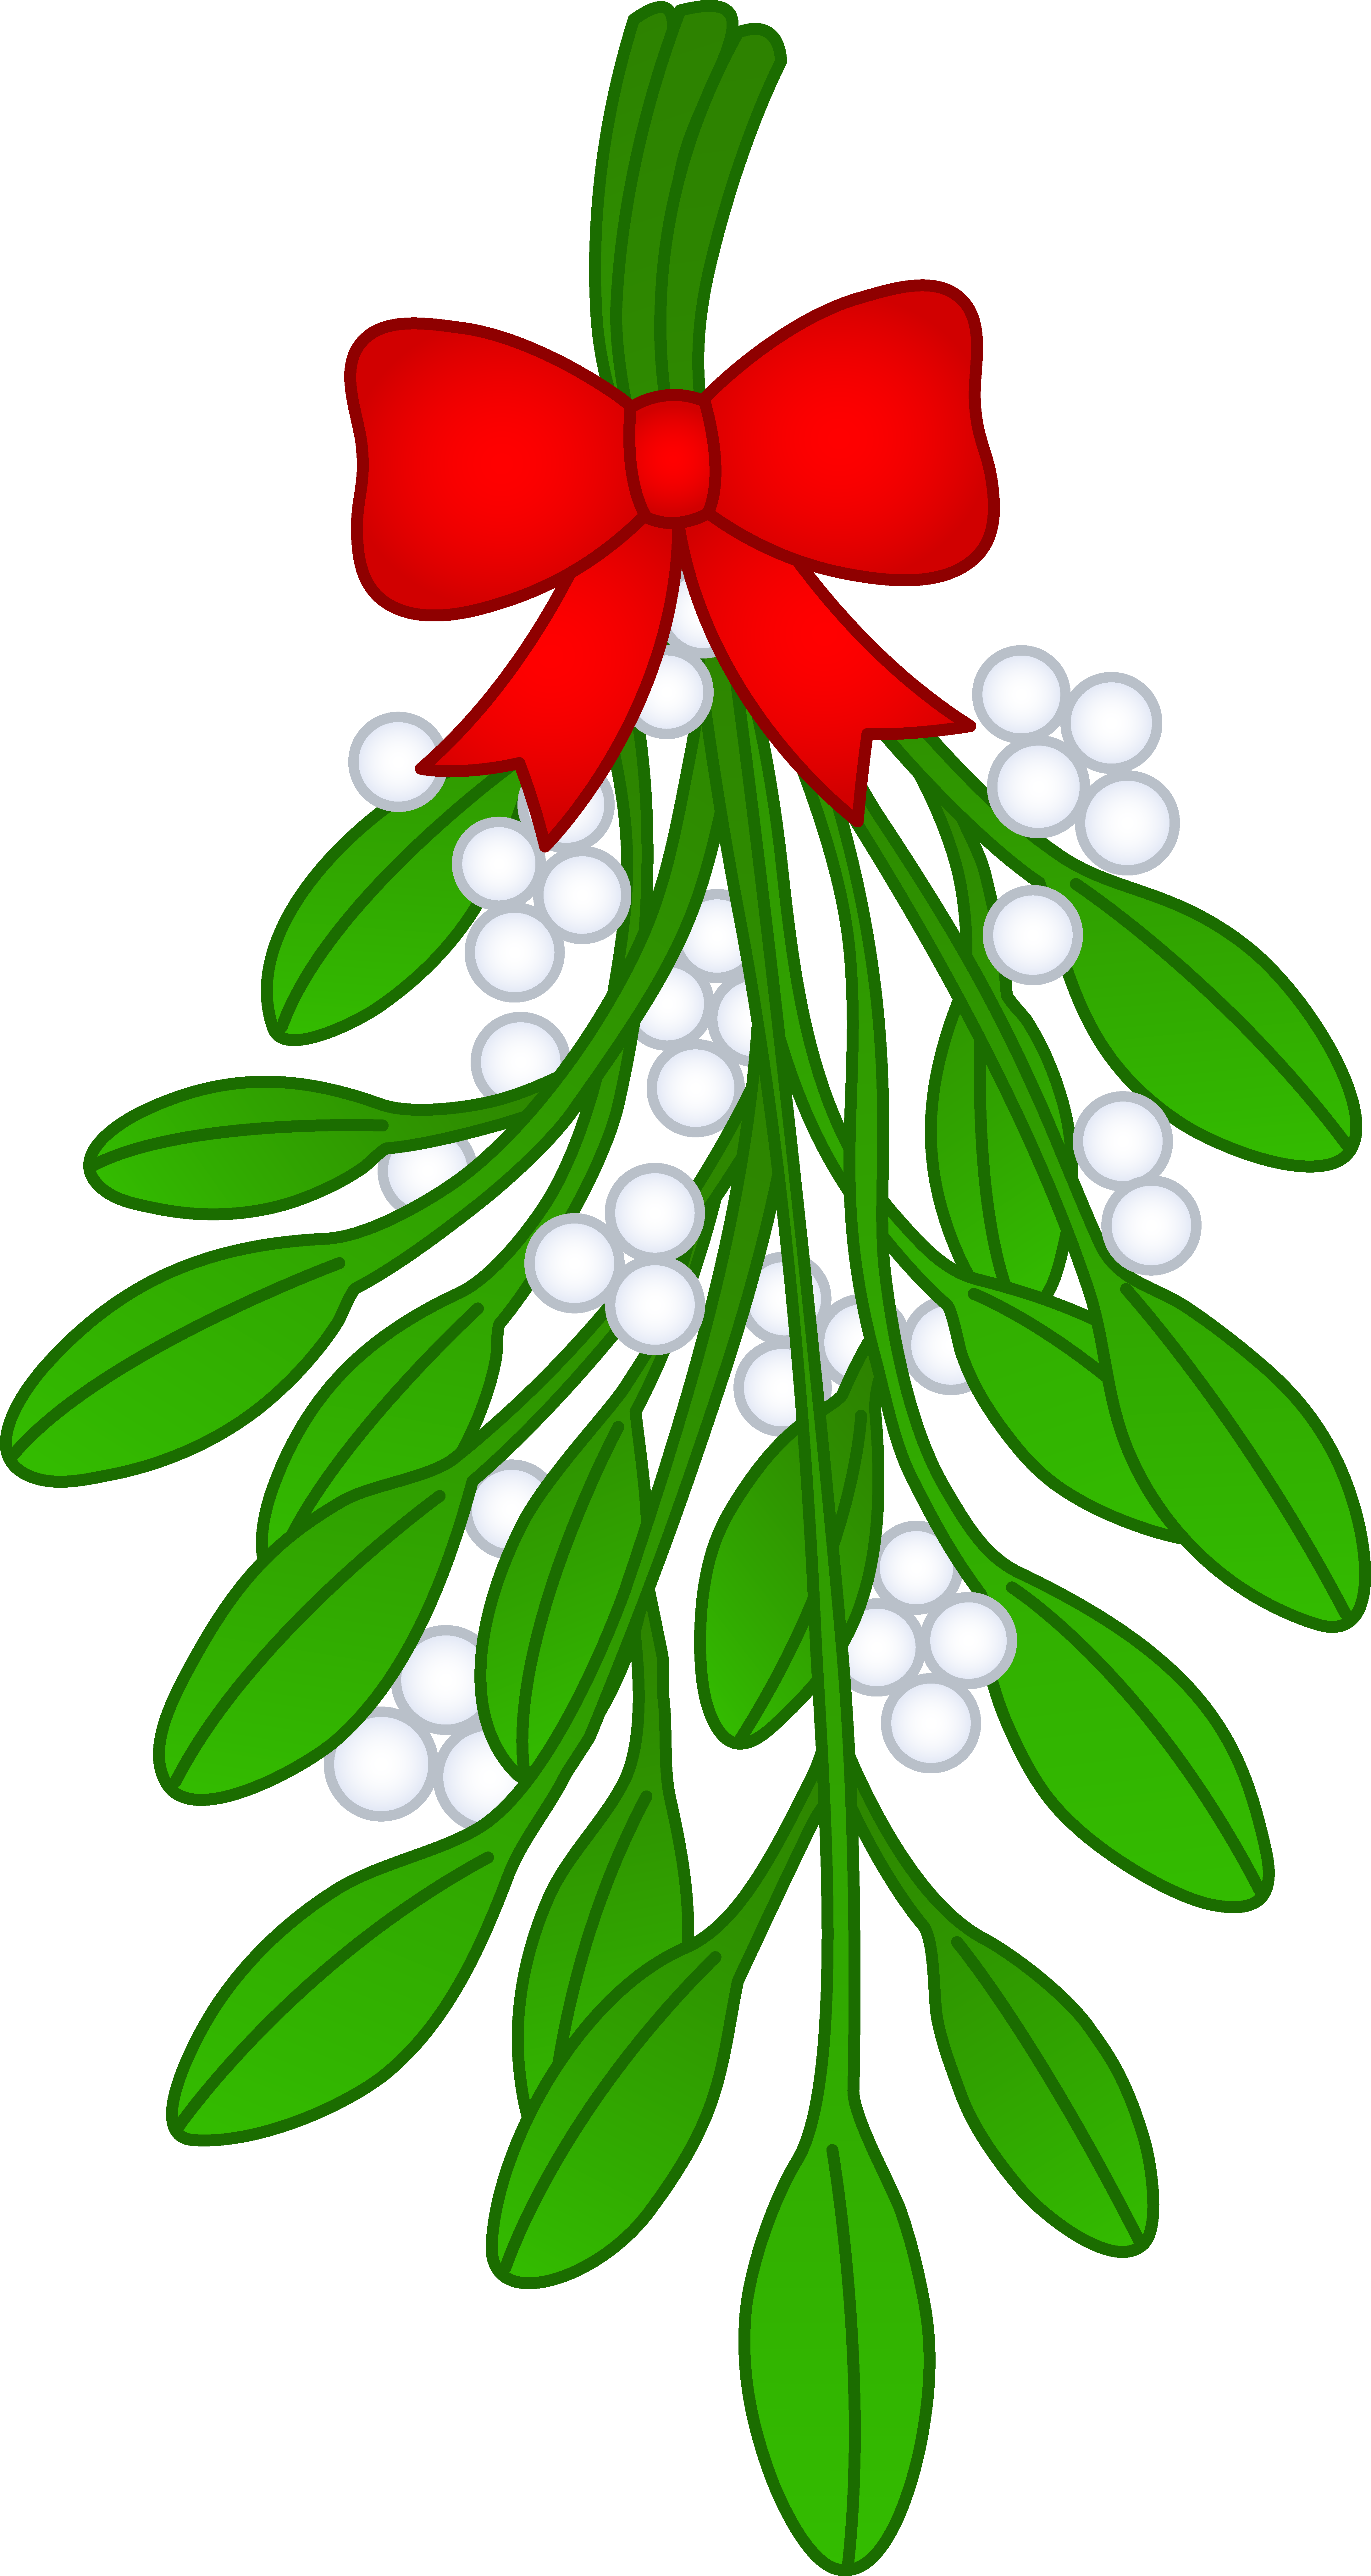 Free mistletoe cliparts download. Winter clipart berry